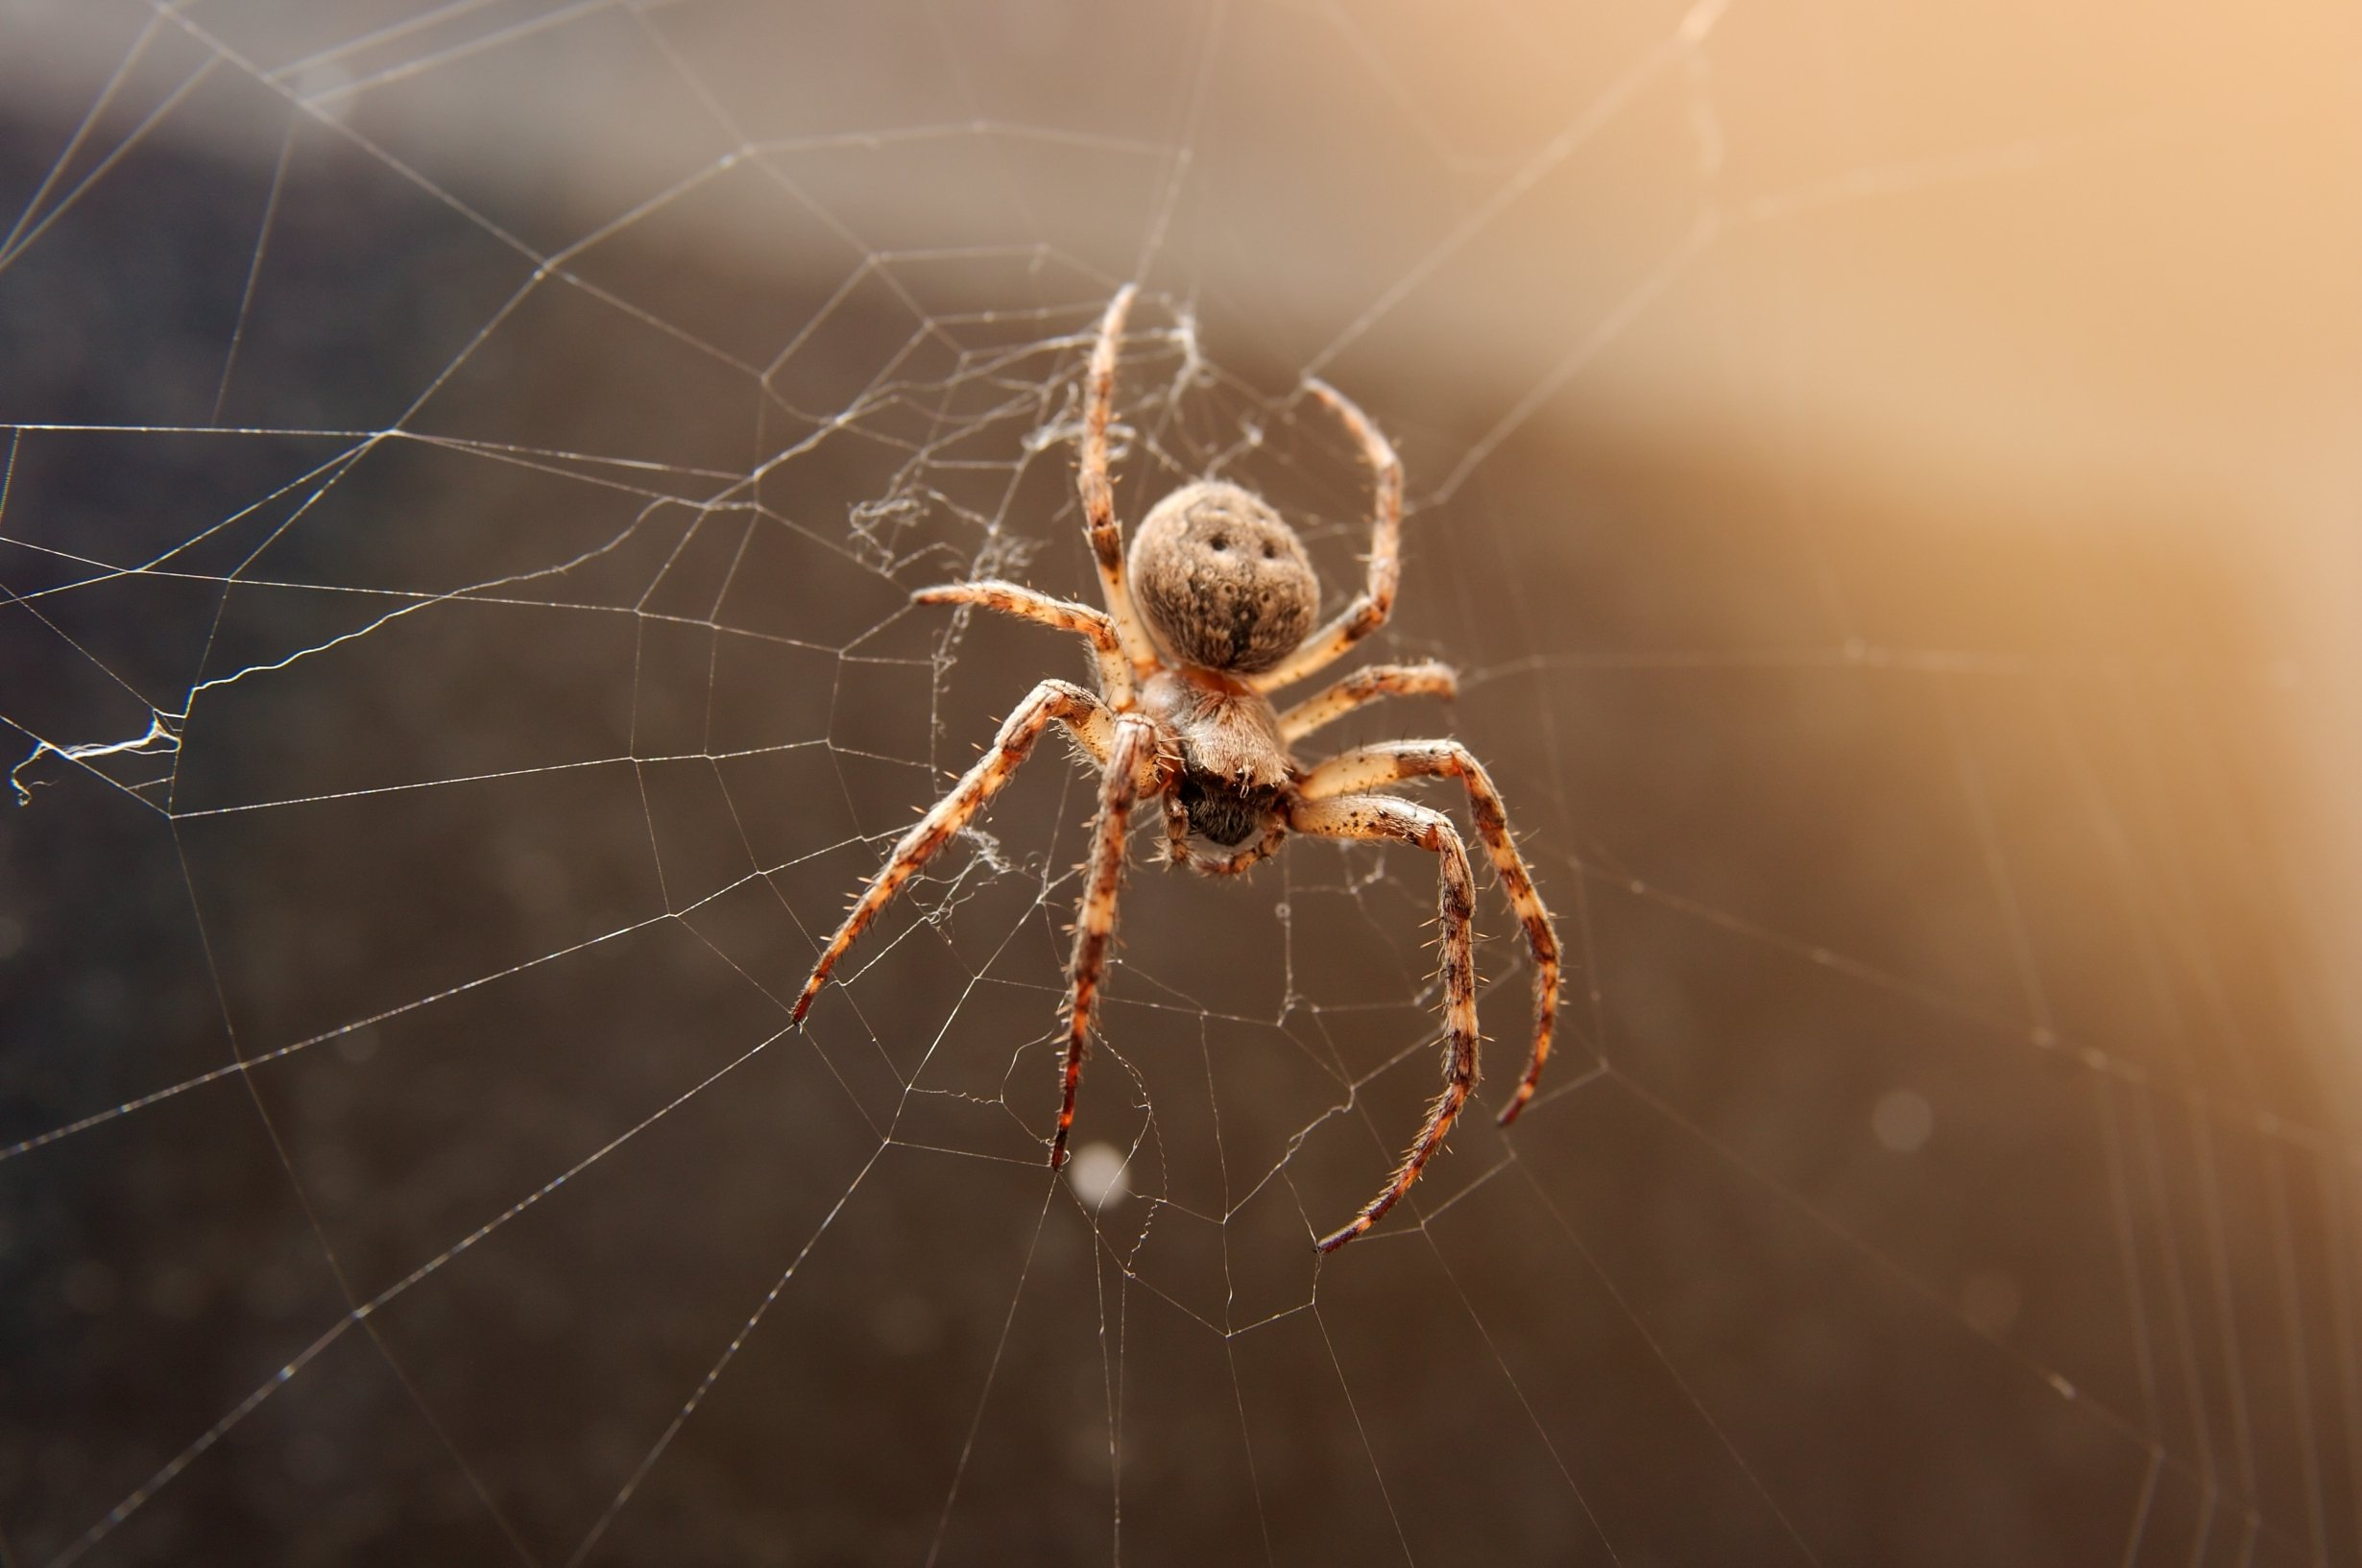 Why are there so many spiders in my house in the Fall?